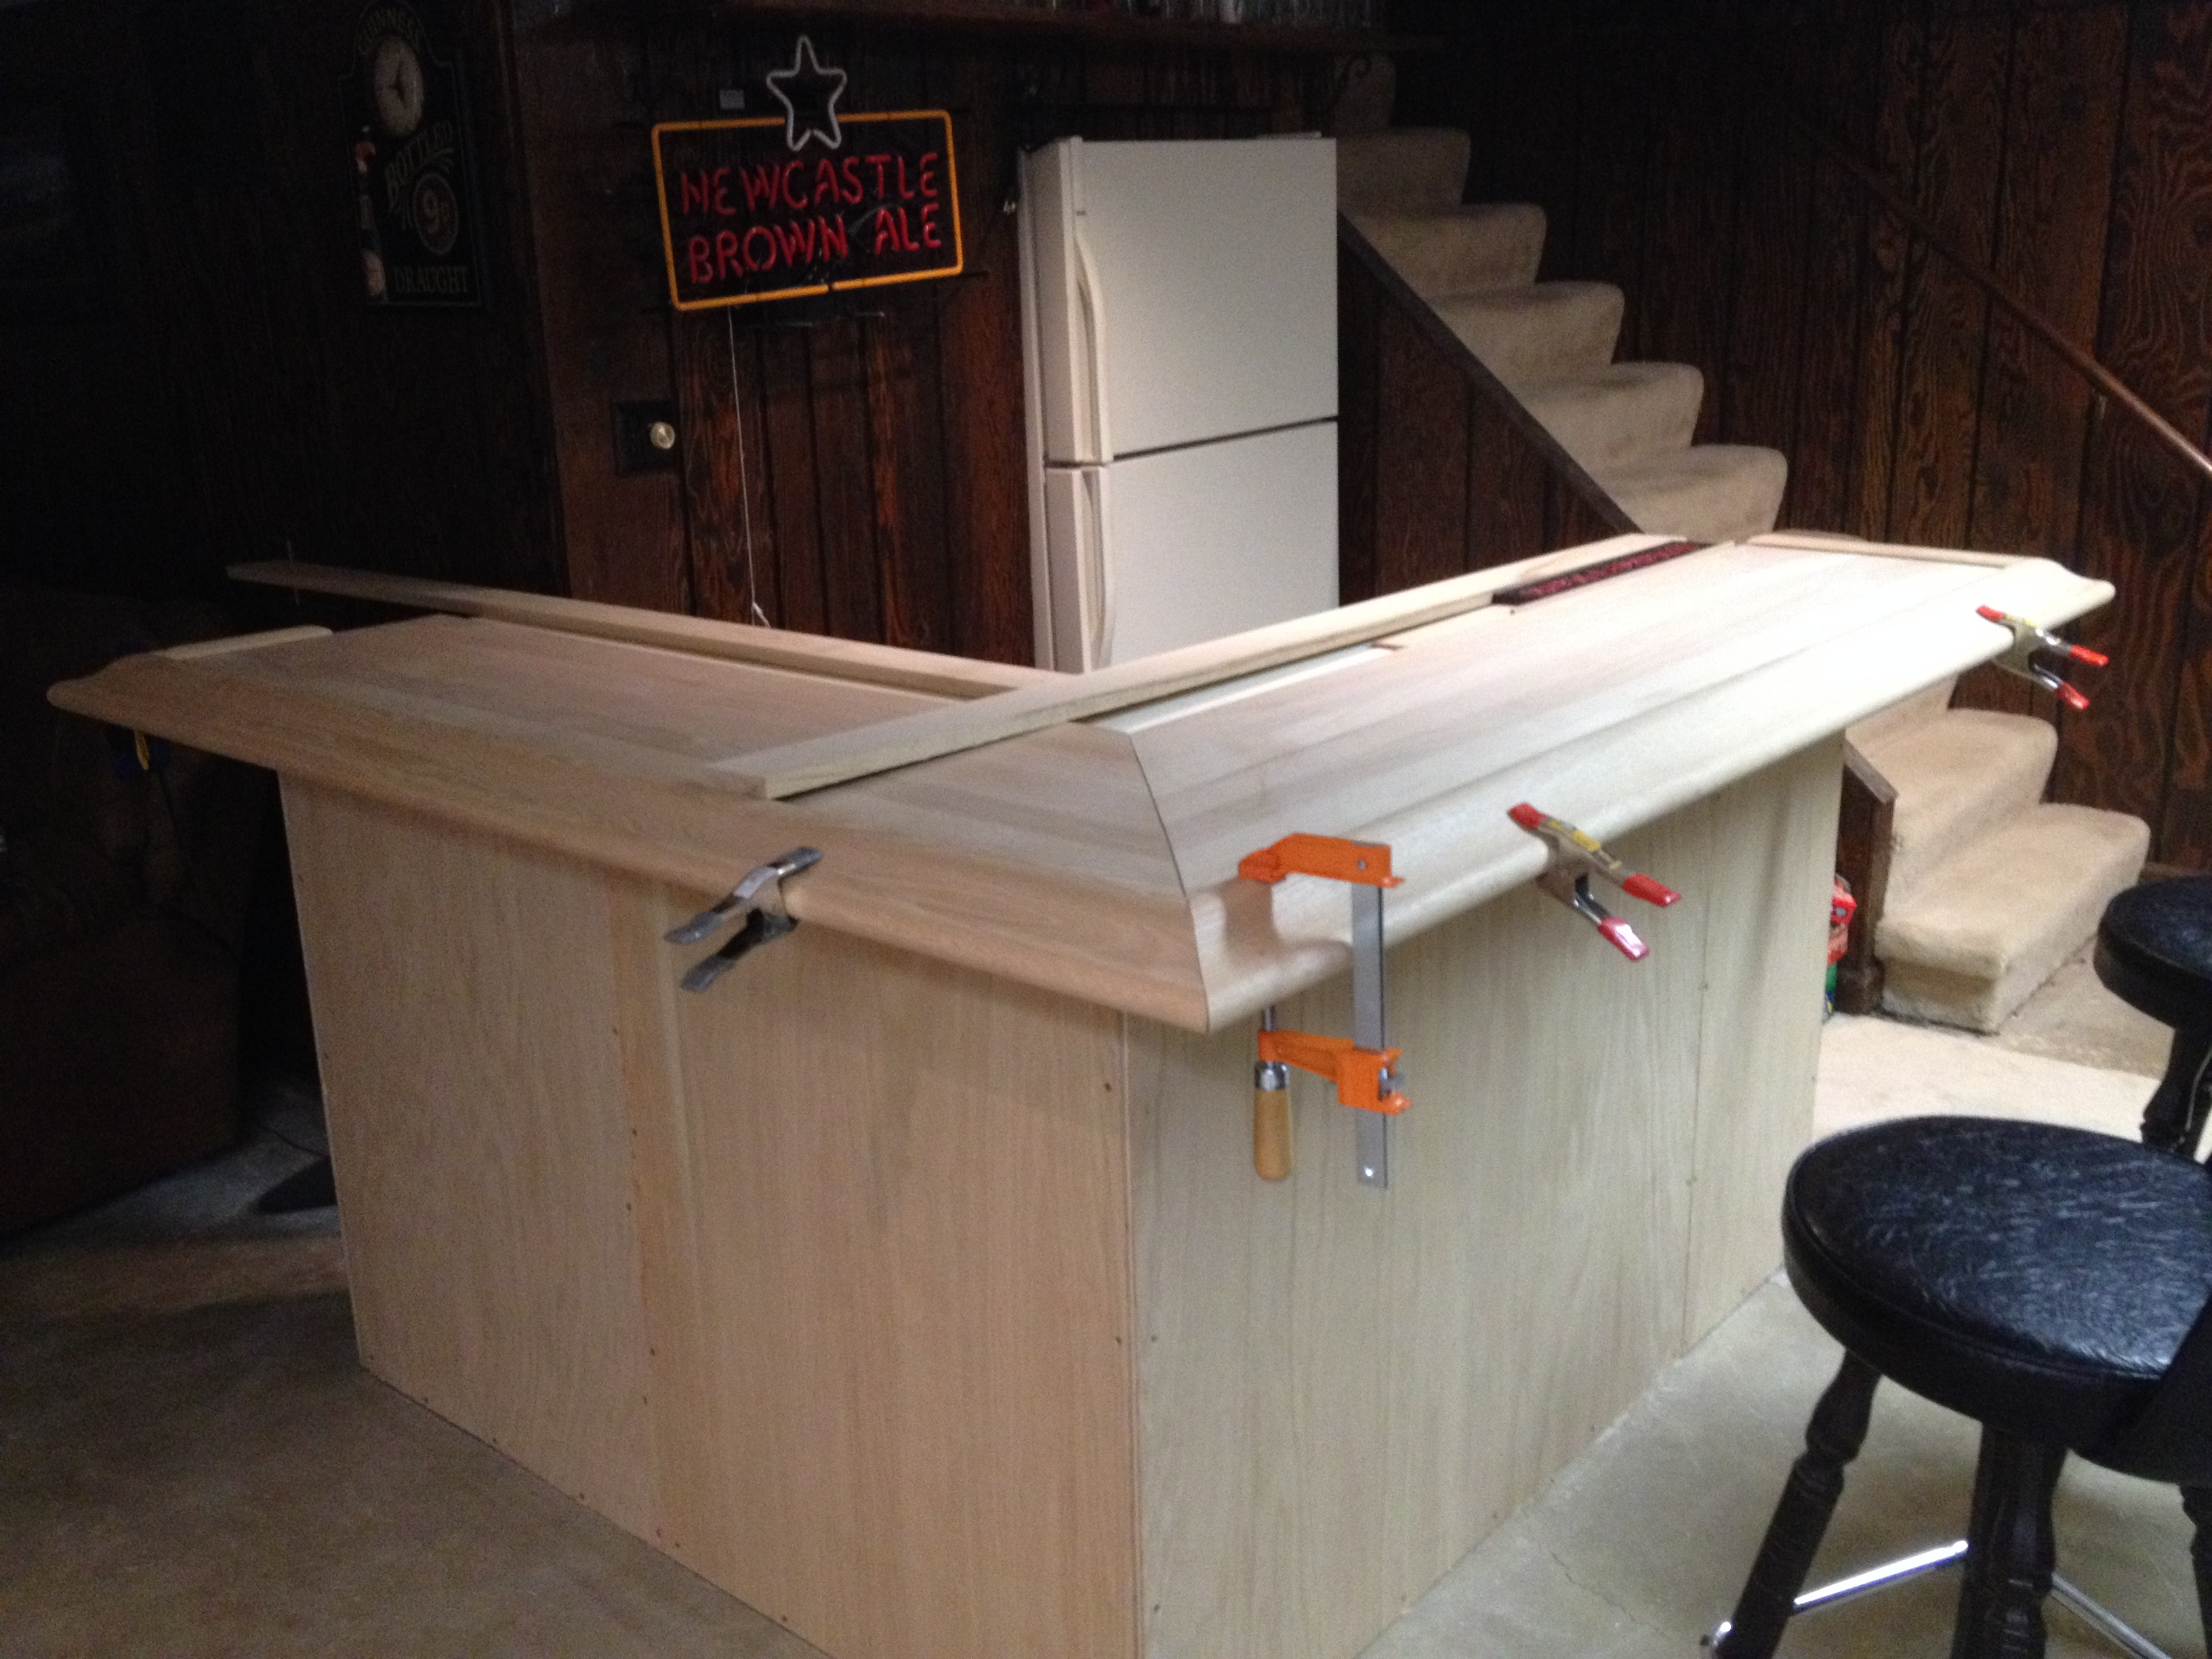 diy basement bar plans. 2014 04 06 18 20 John Everson  Dark Arts Blog Archive DIY How To Build Your